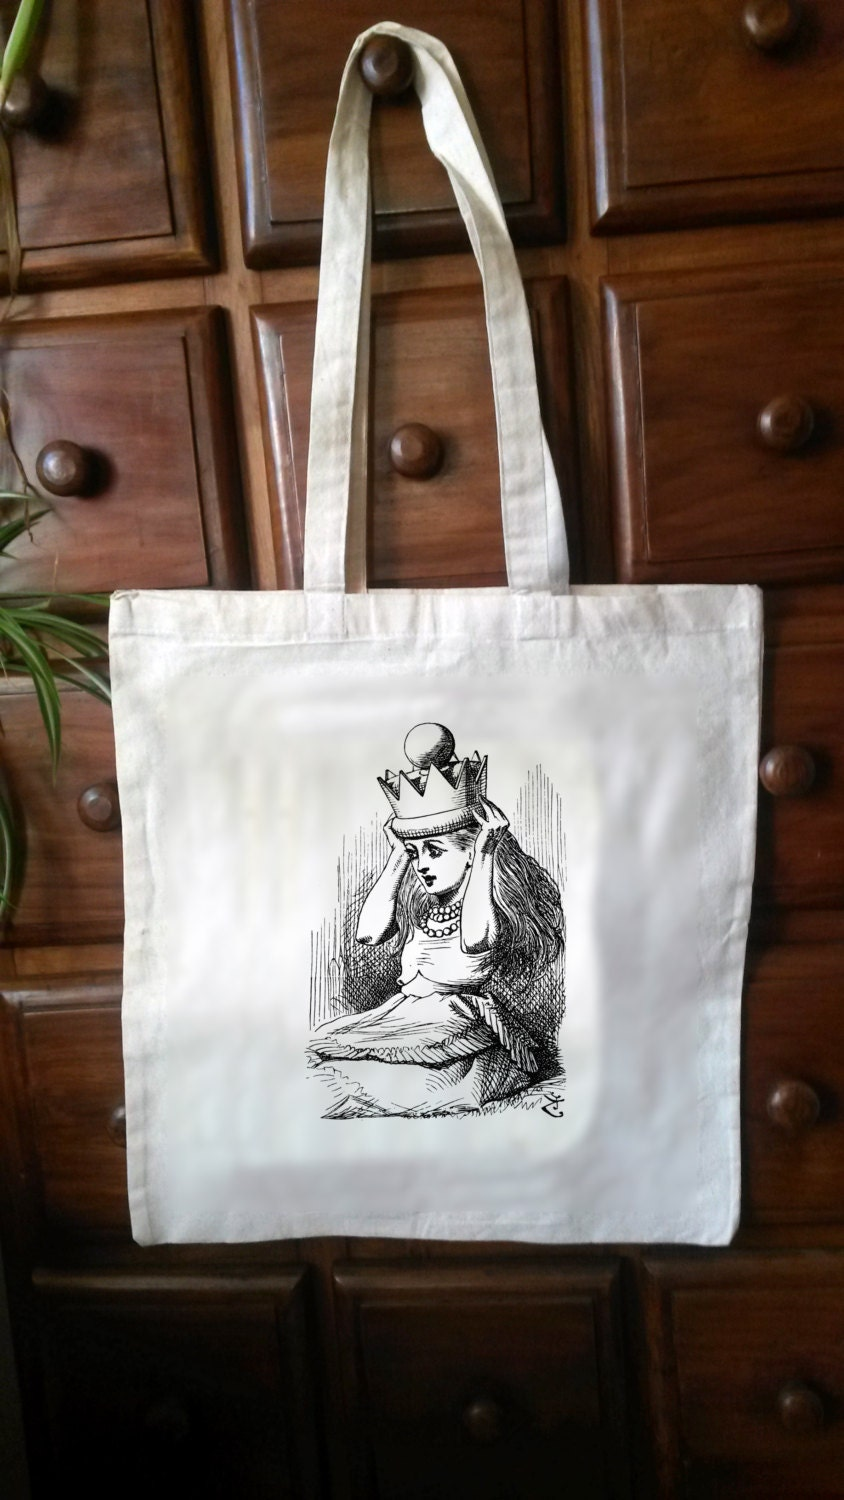 One CreamWhite Cotton Tote with an original illustration taken from the first edition of CS Lewiss Alice in Wonderland (Bag06)